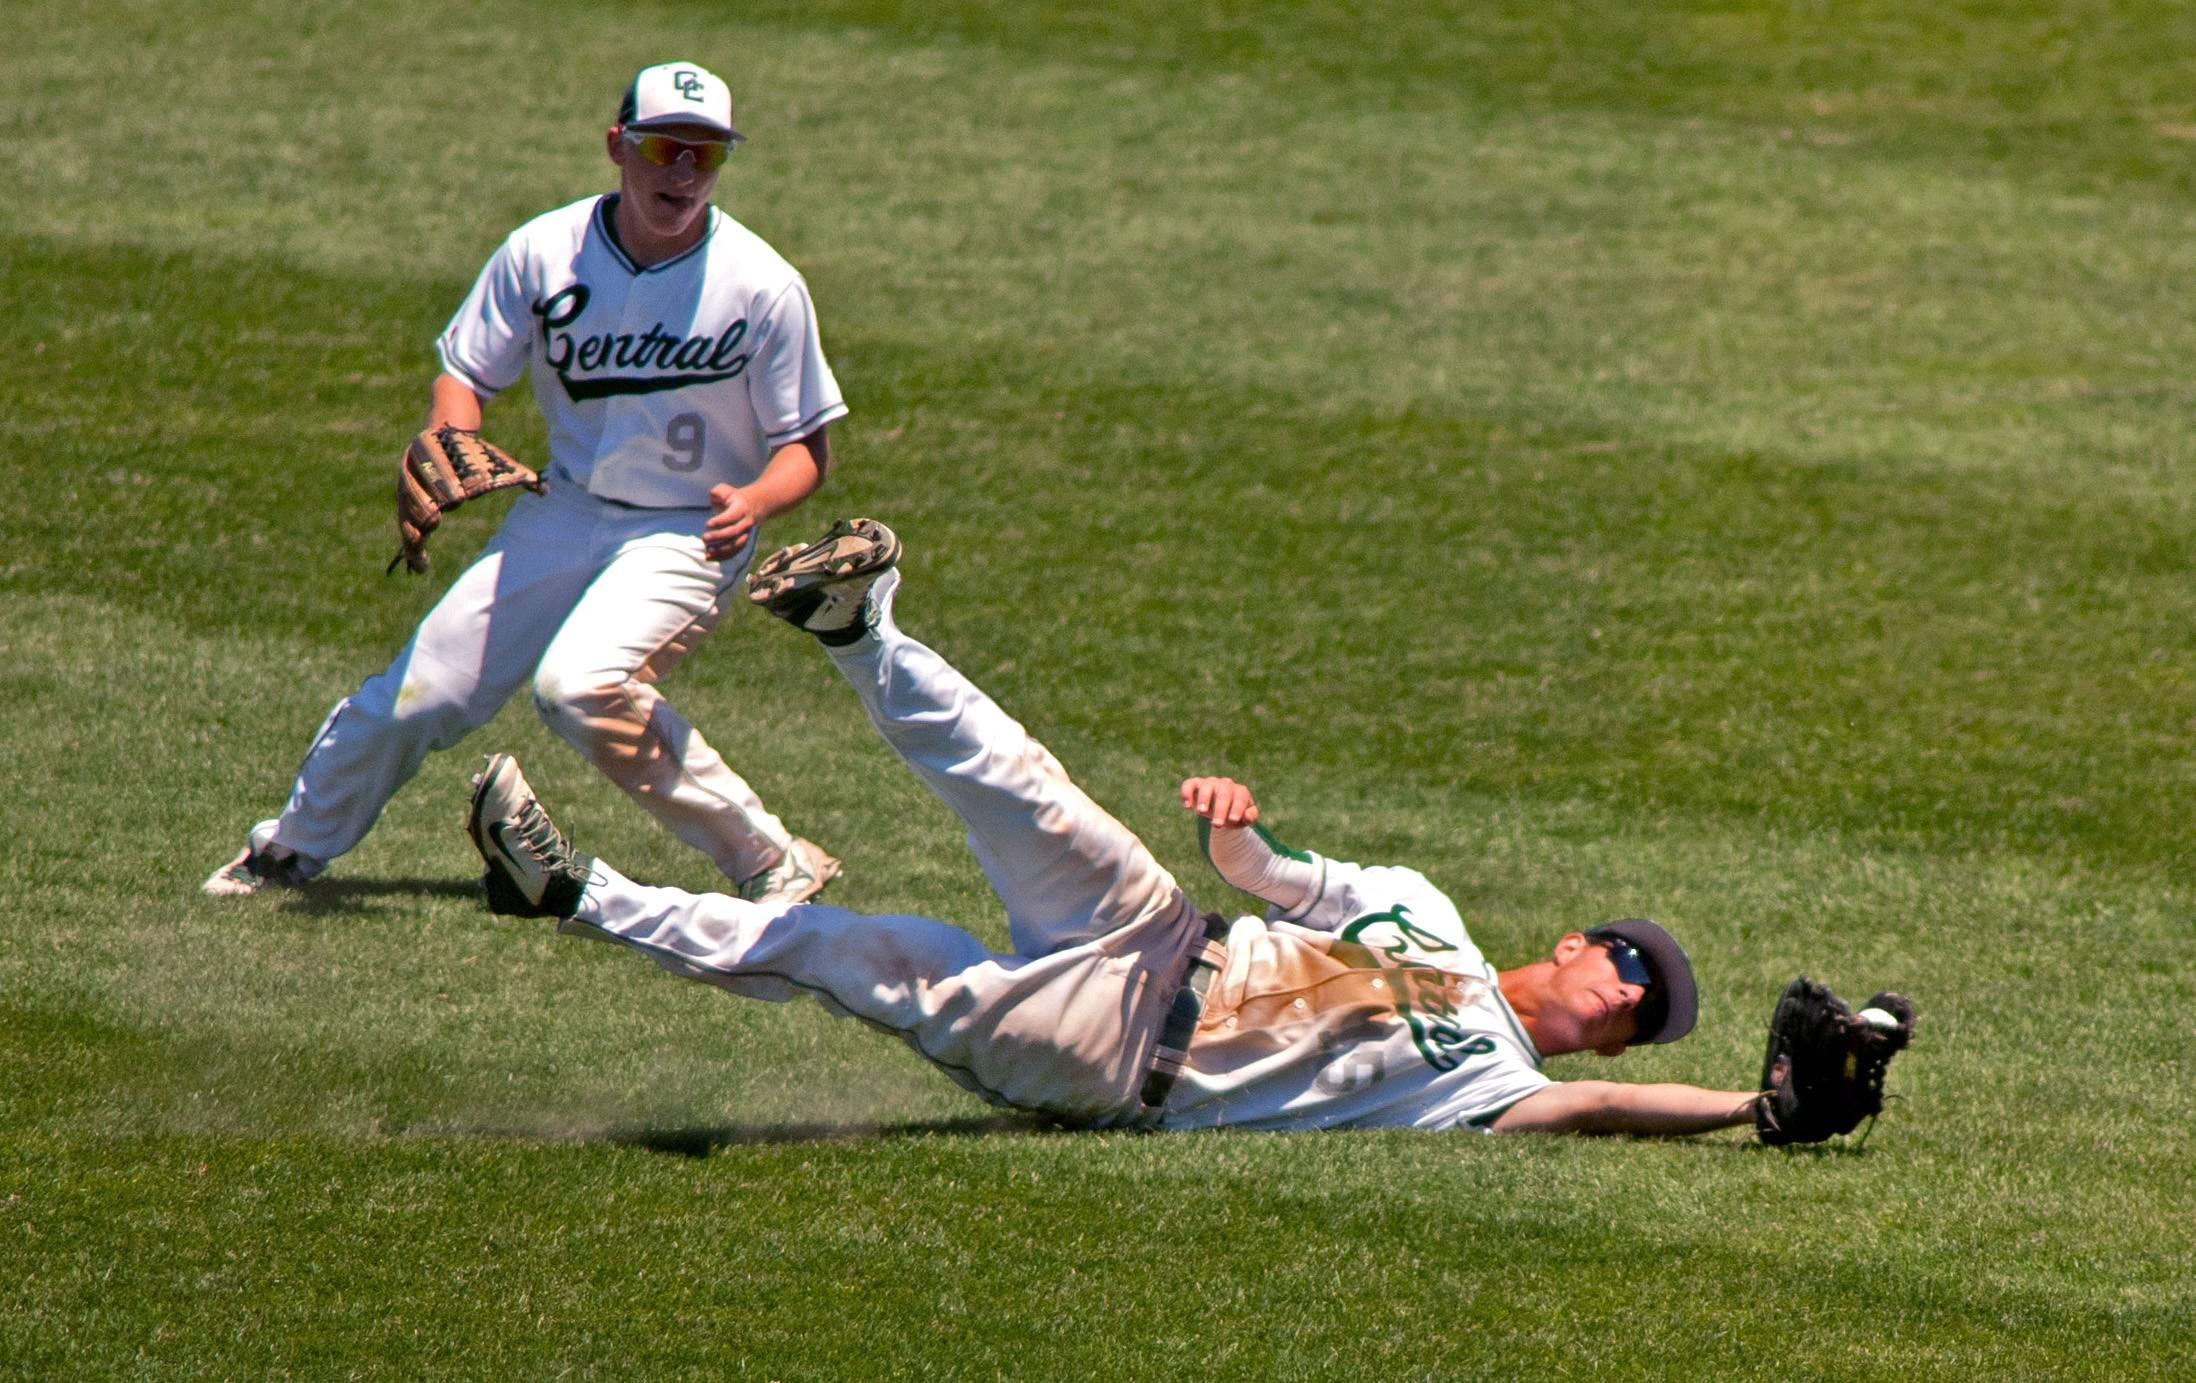 Grayslake Central center fielder Matt Loeffl makes a spectacular fourth-inning diving catch against Springfield Sacred Heart-Griffin during the Class 3A baseball state semifinals at Silver Cross Field in Joliet as right fielder Justin Dooley monitors the play.